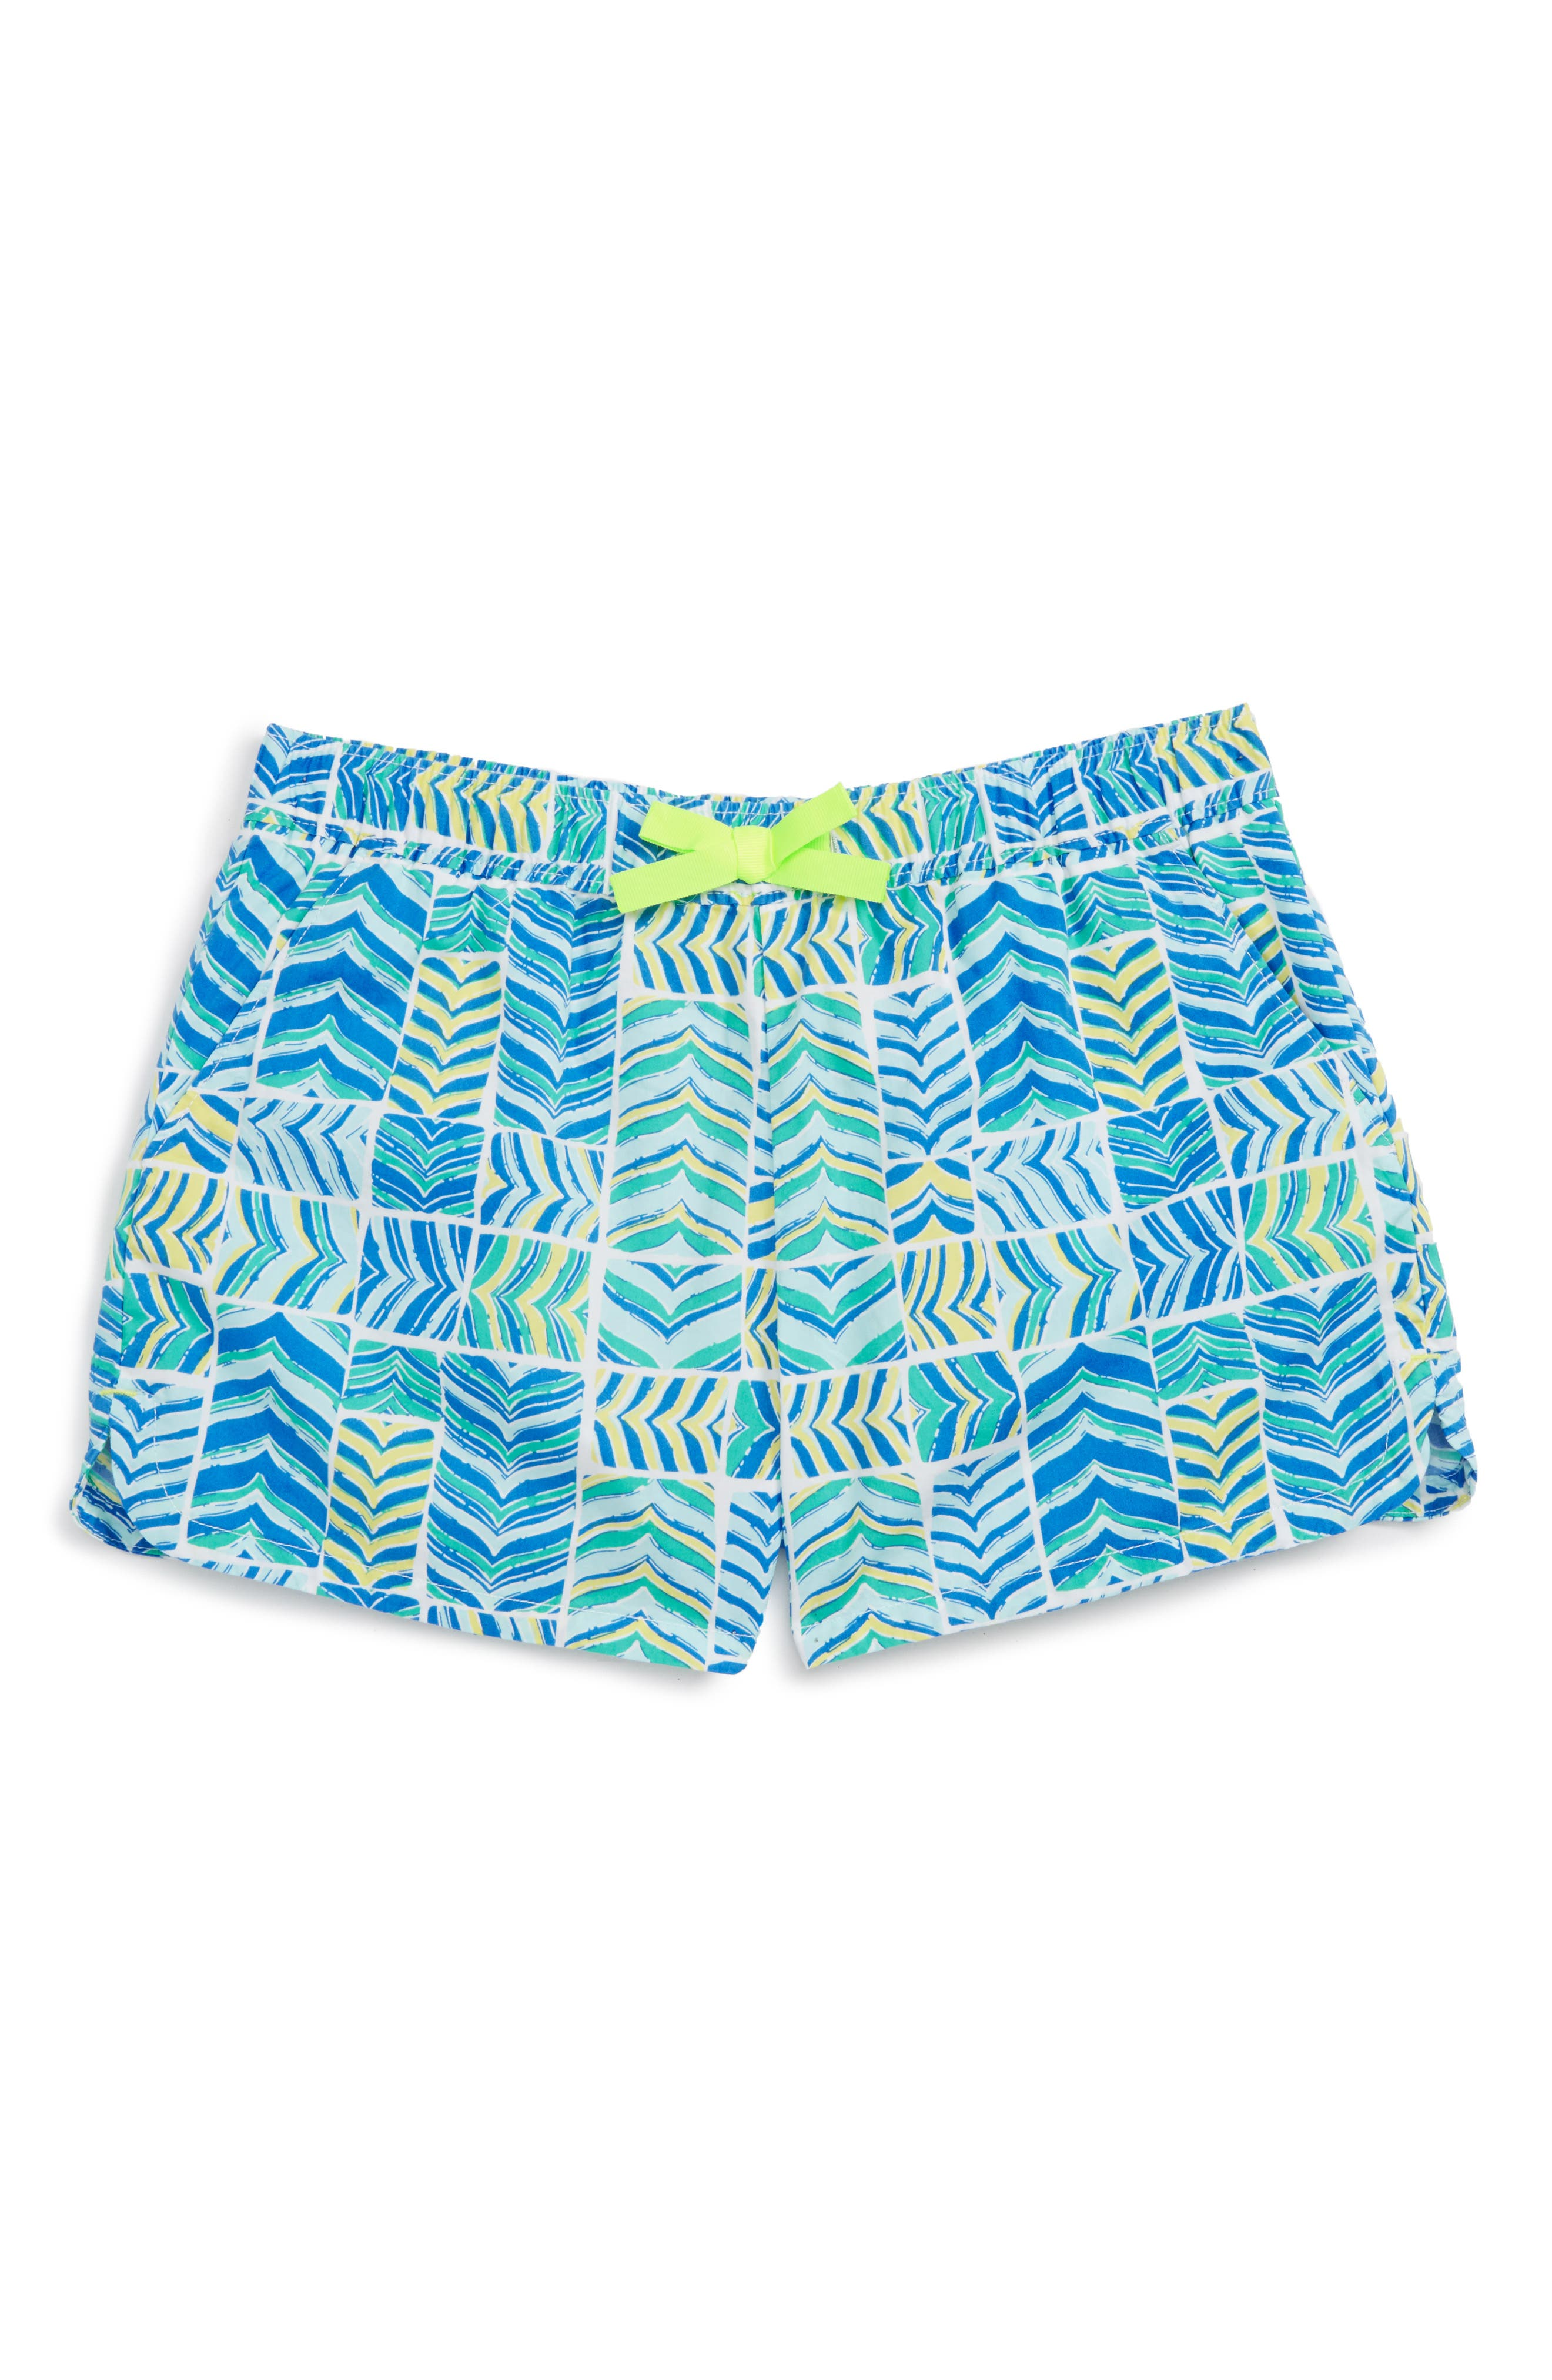 Main Image - vineyard vines Whaletail Patchwork Shorts (Toddler Girls & Big Girls)